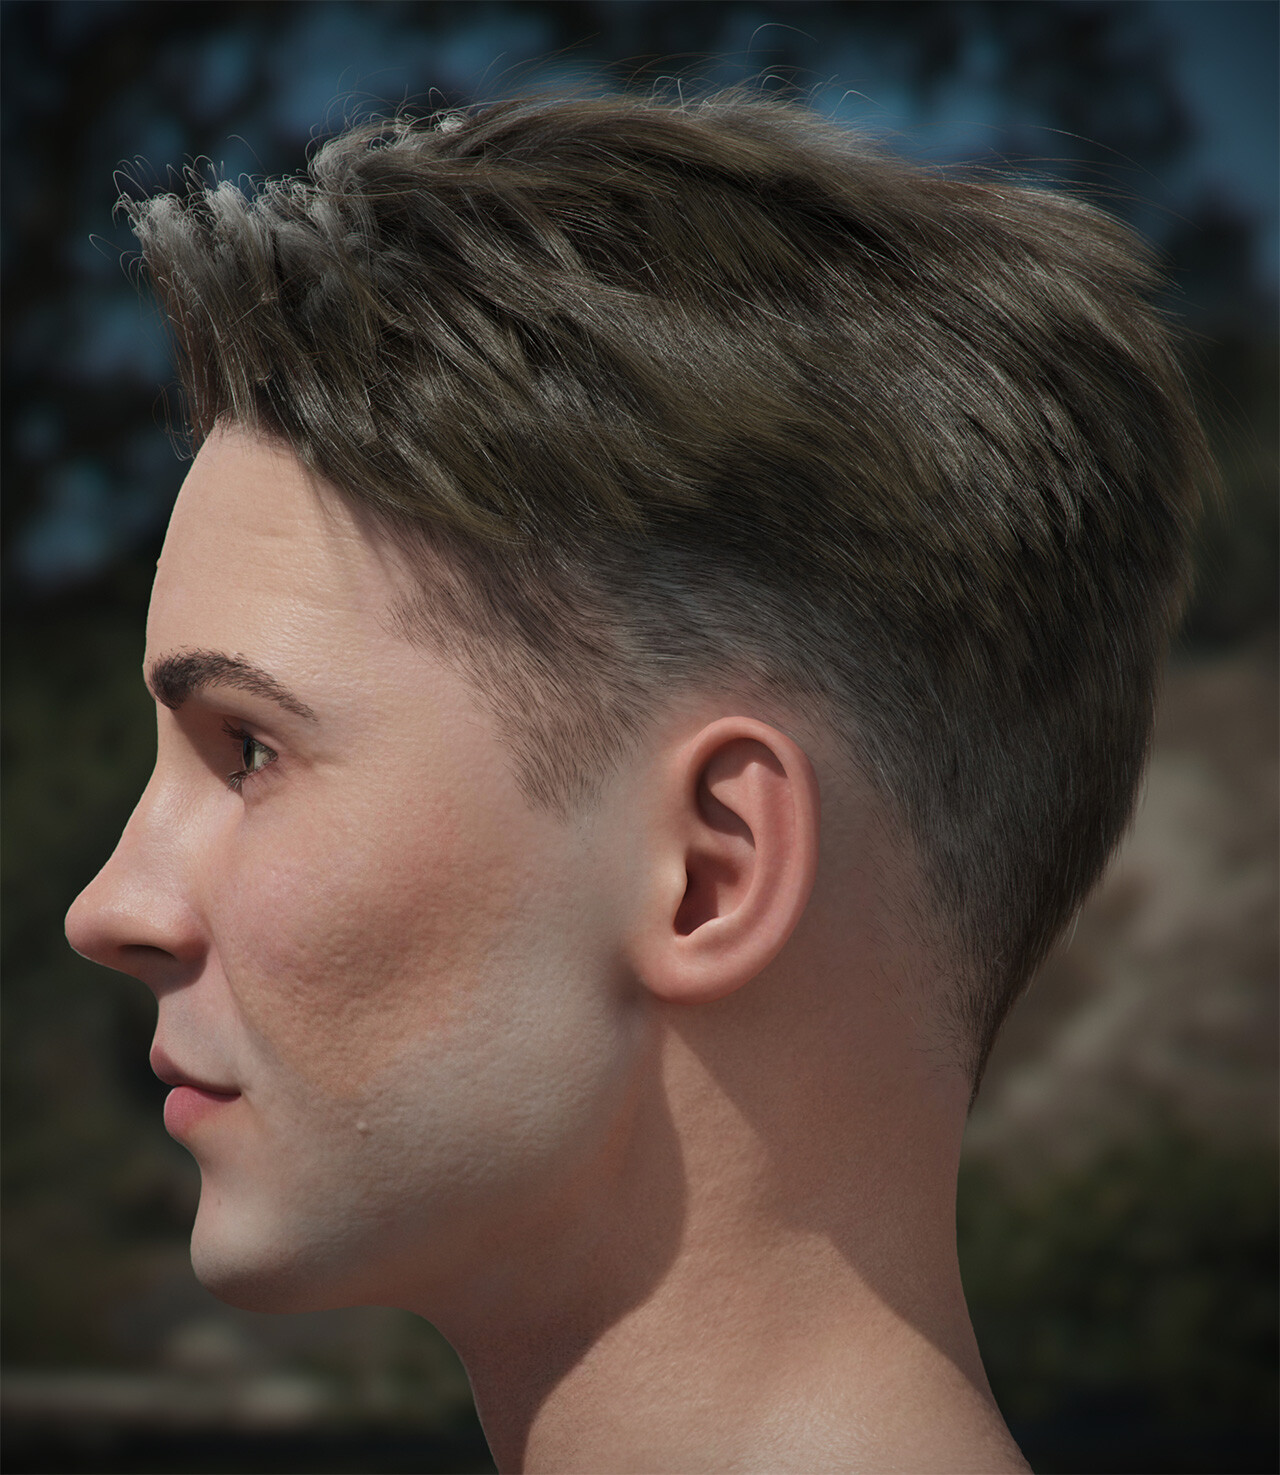 Andrew krivulya genry haircut 1 by akcharly cam02